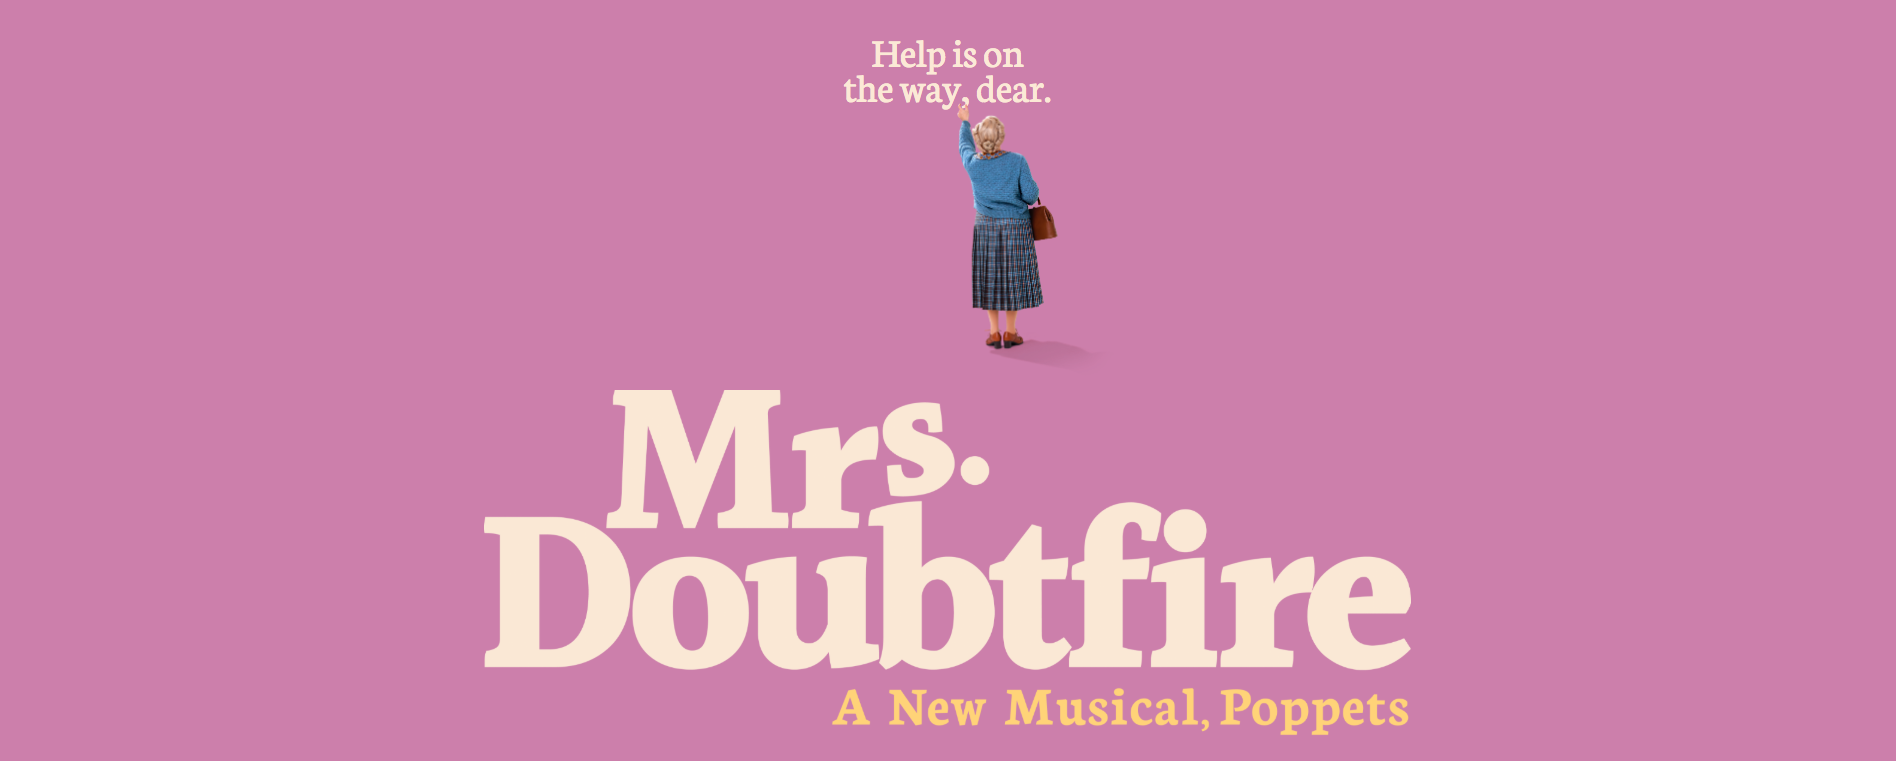 "Mrs Doubtfire is depicted next to her famous saying ""Help is on the way, dear!"""